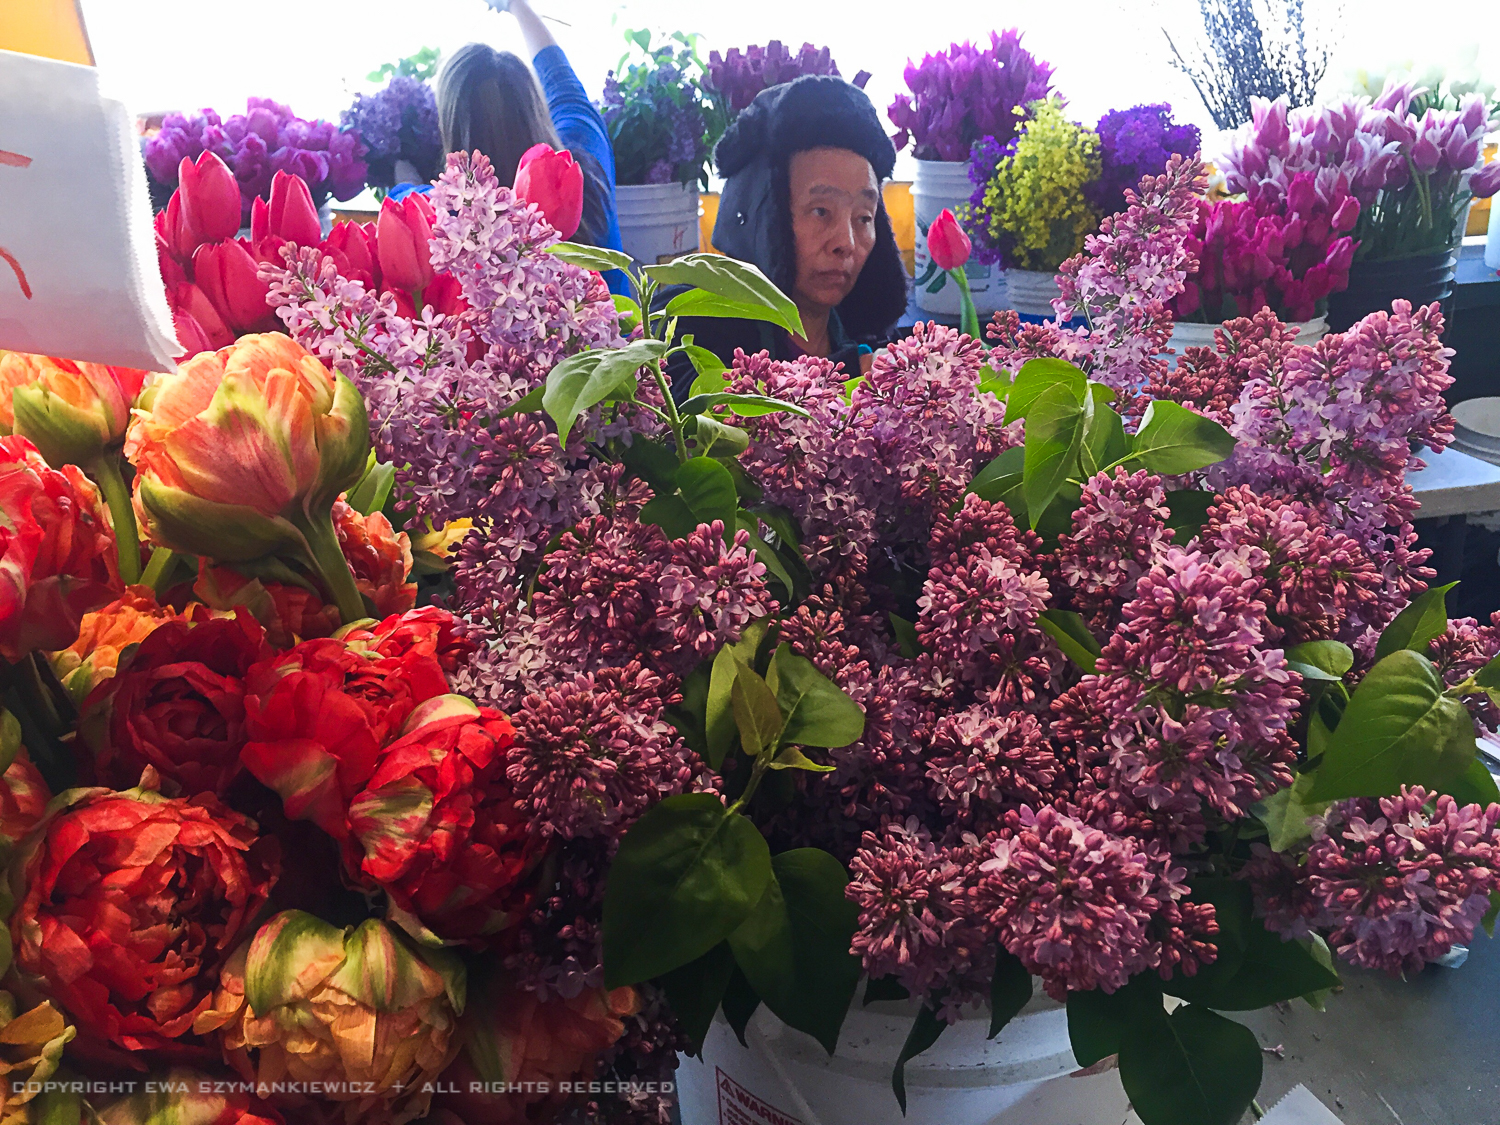 Pike Place Market in Seattle, Abundance of flowers